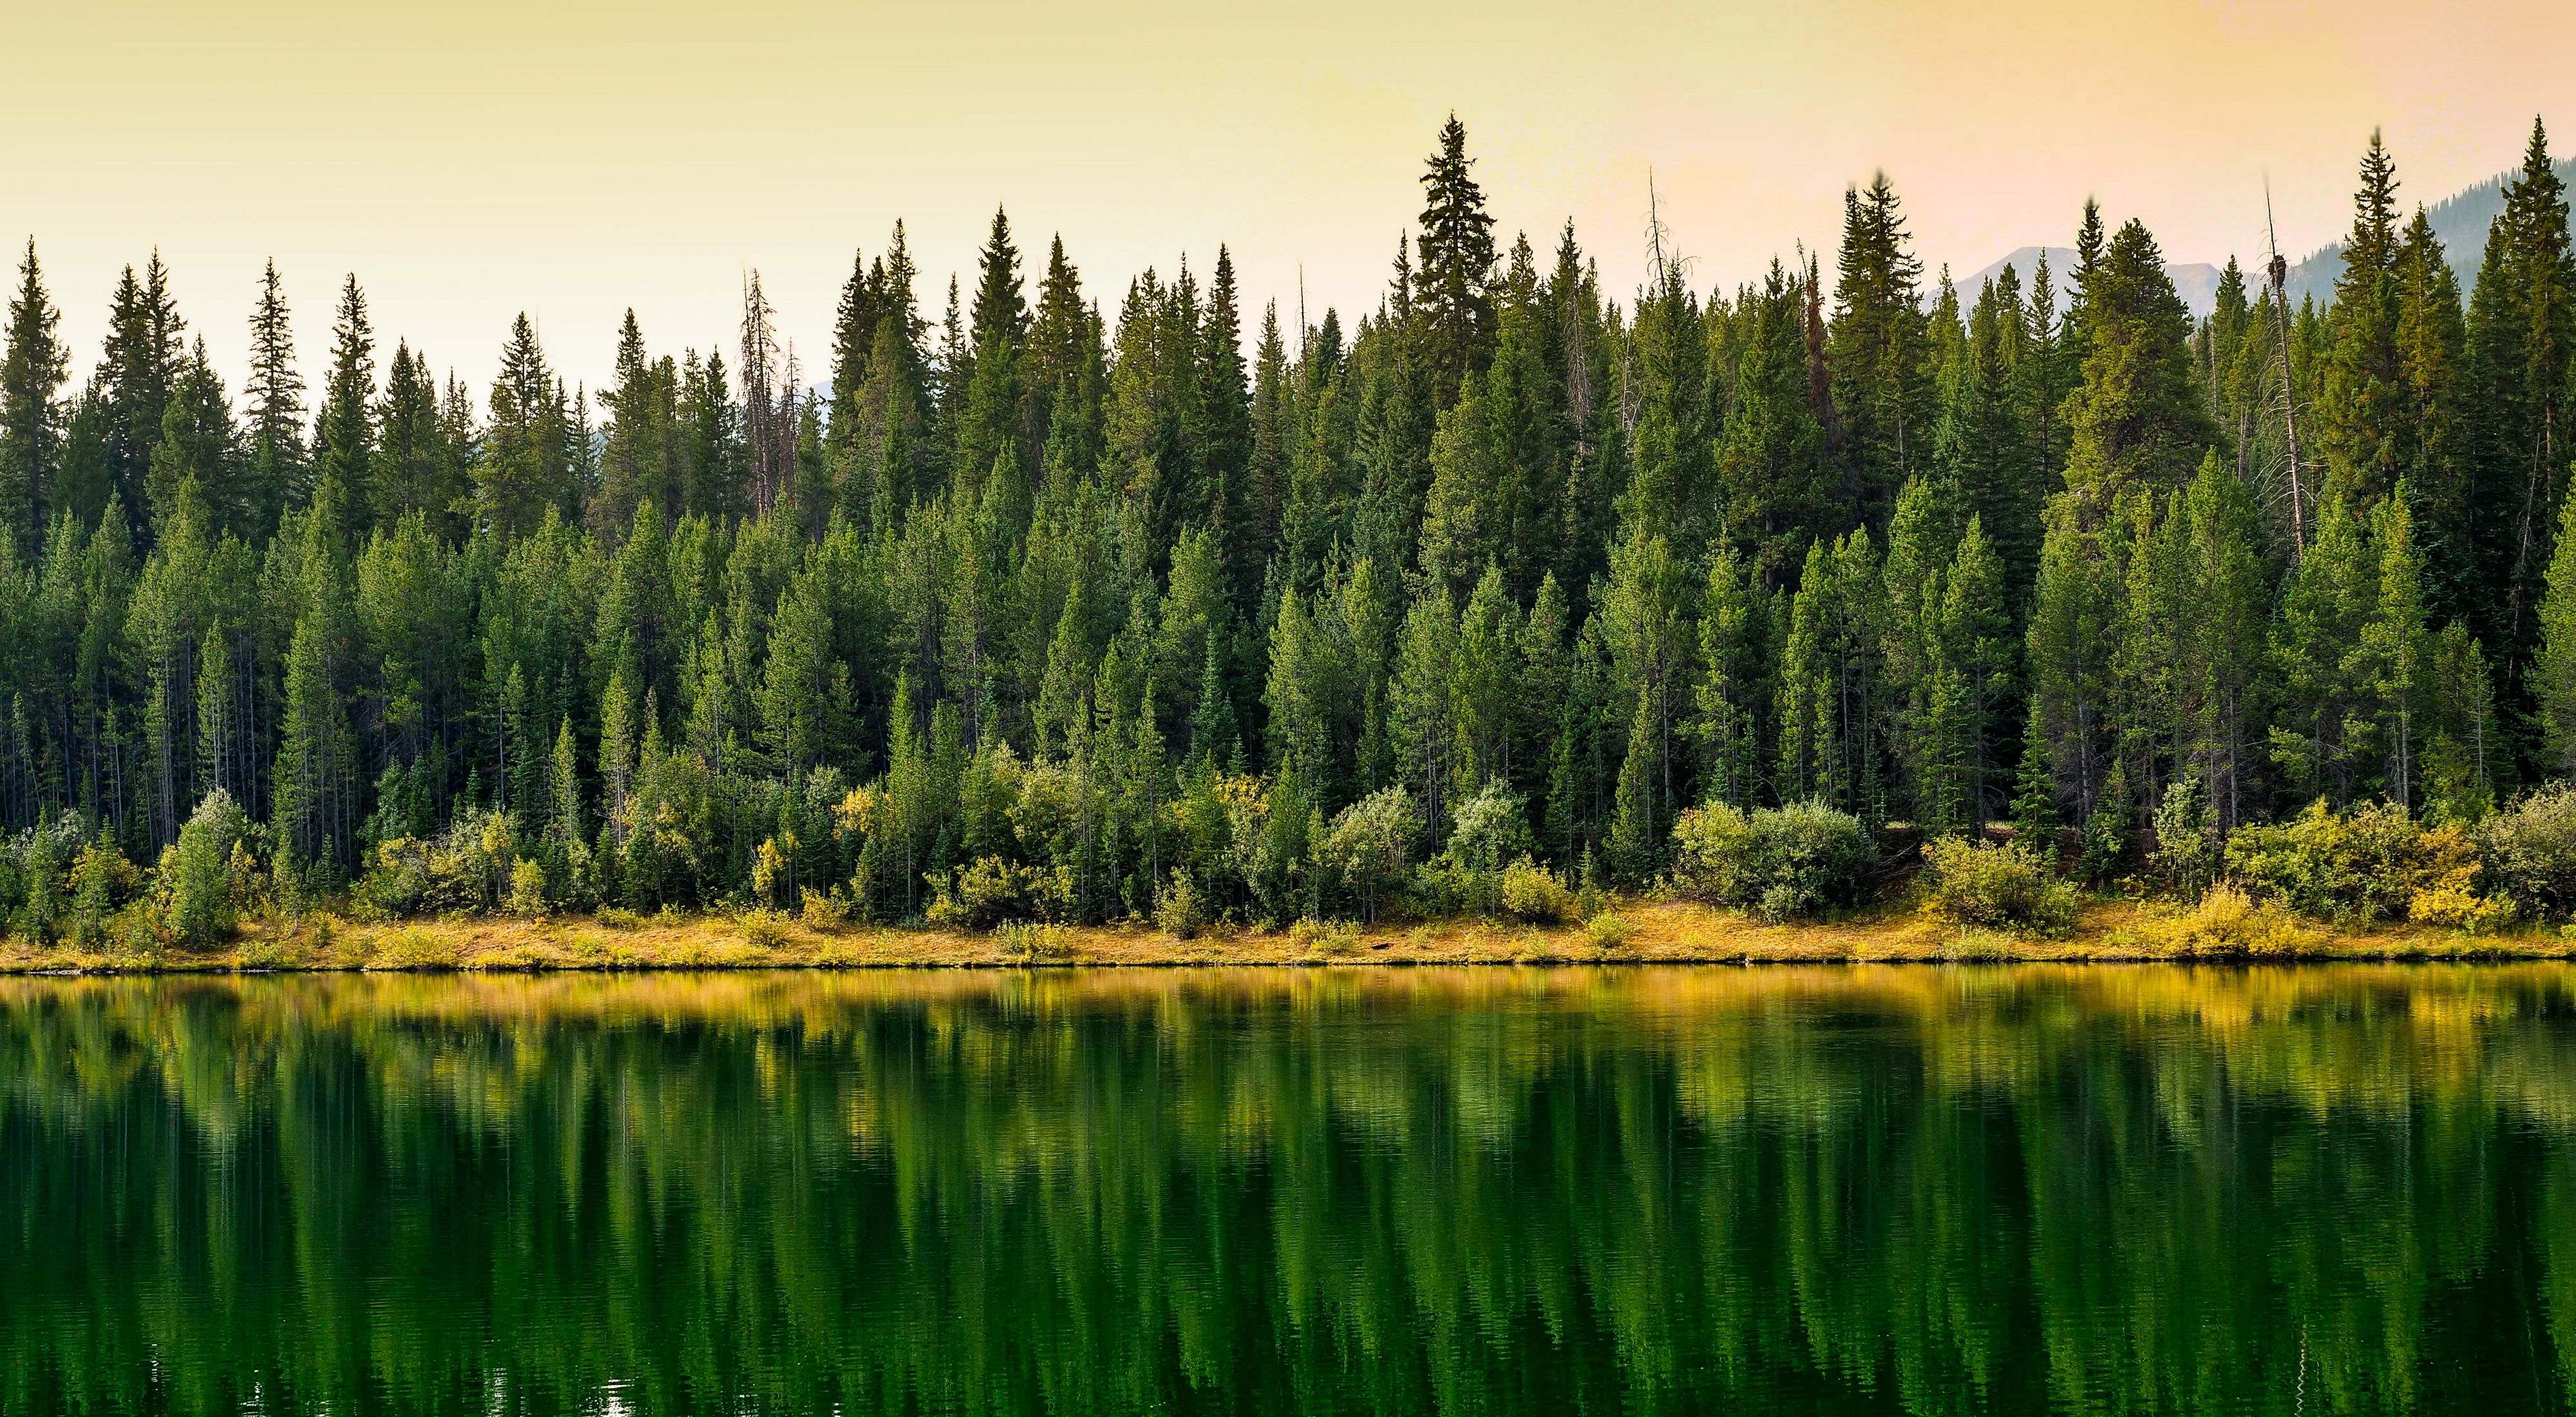 Spruce and Pine Trees Lakeside reflection